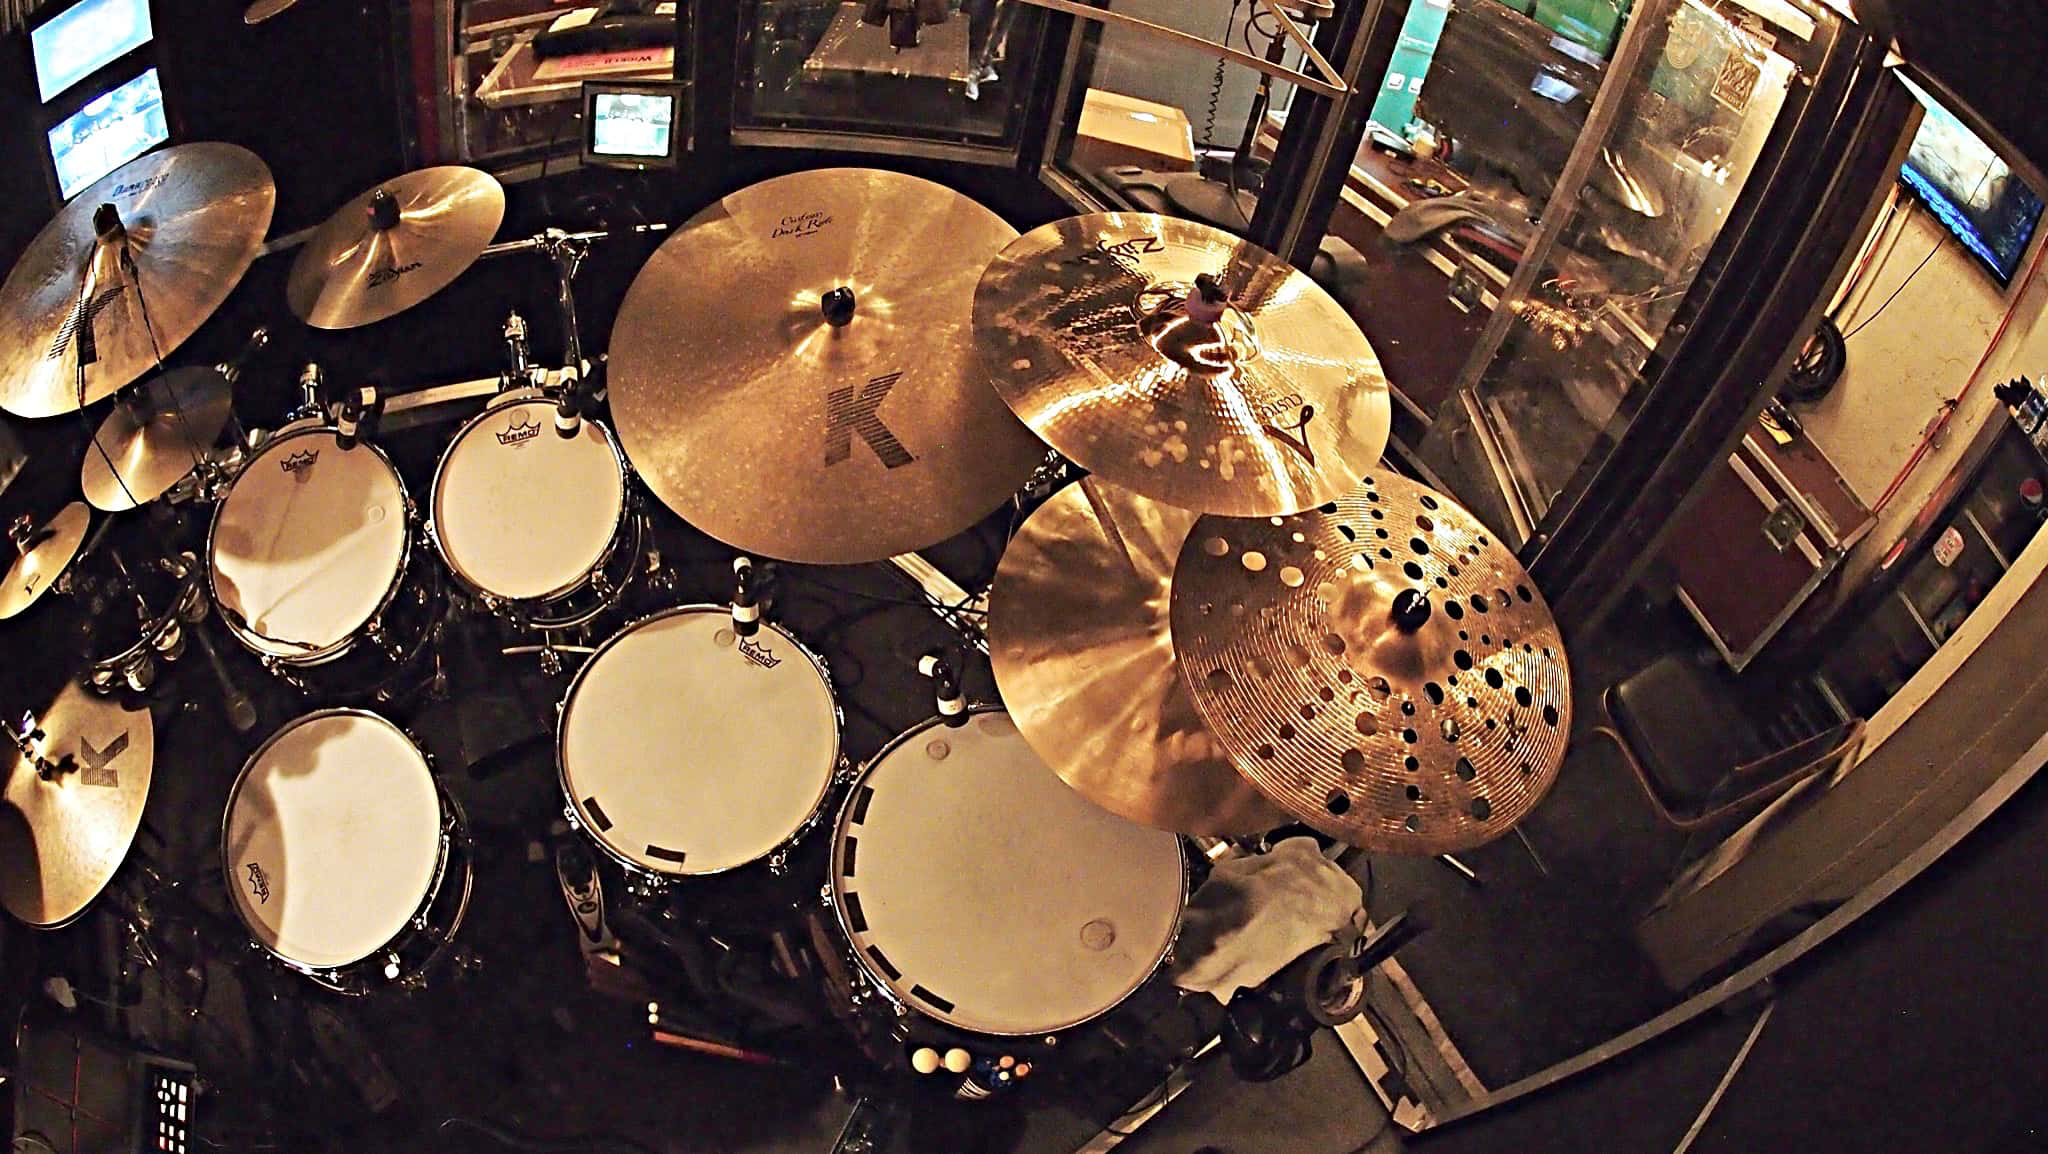 Tim Mulligan's drum set setup for the National Tour of Wicked at the Paramount Theater in Seattle, Washington.